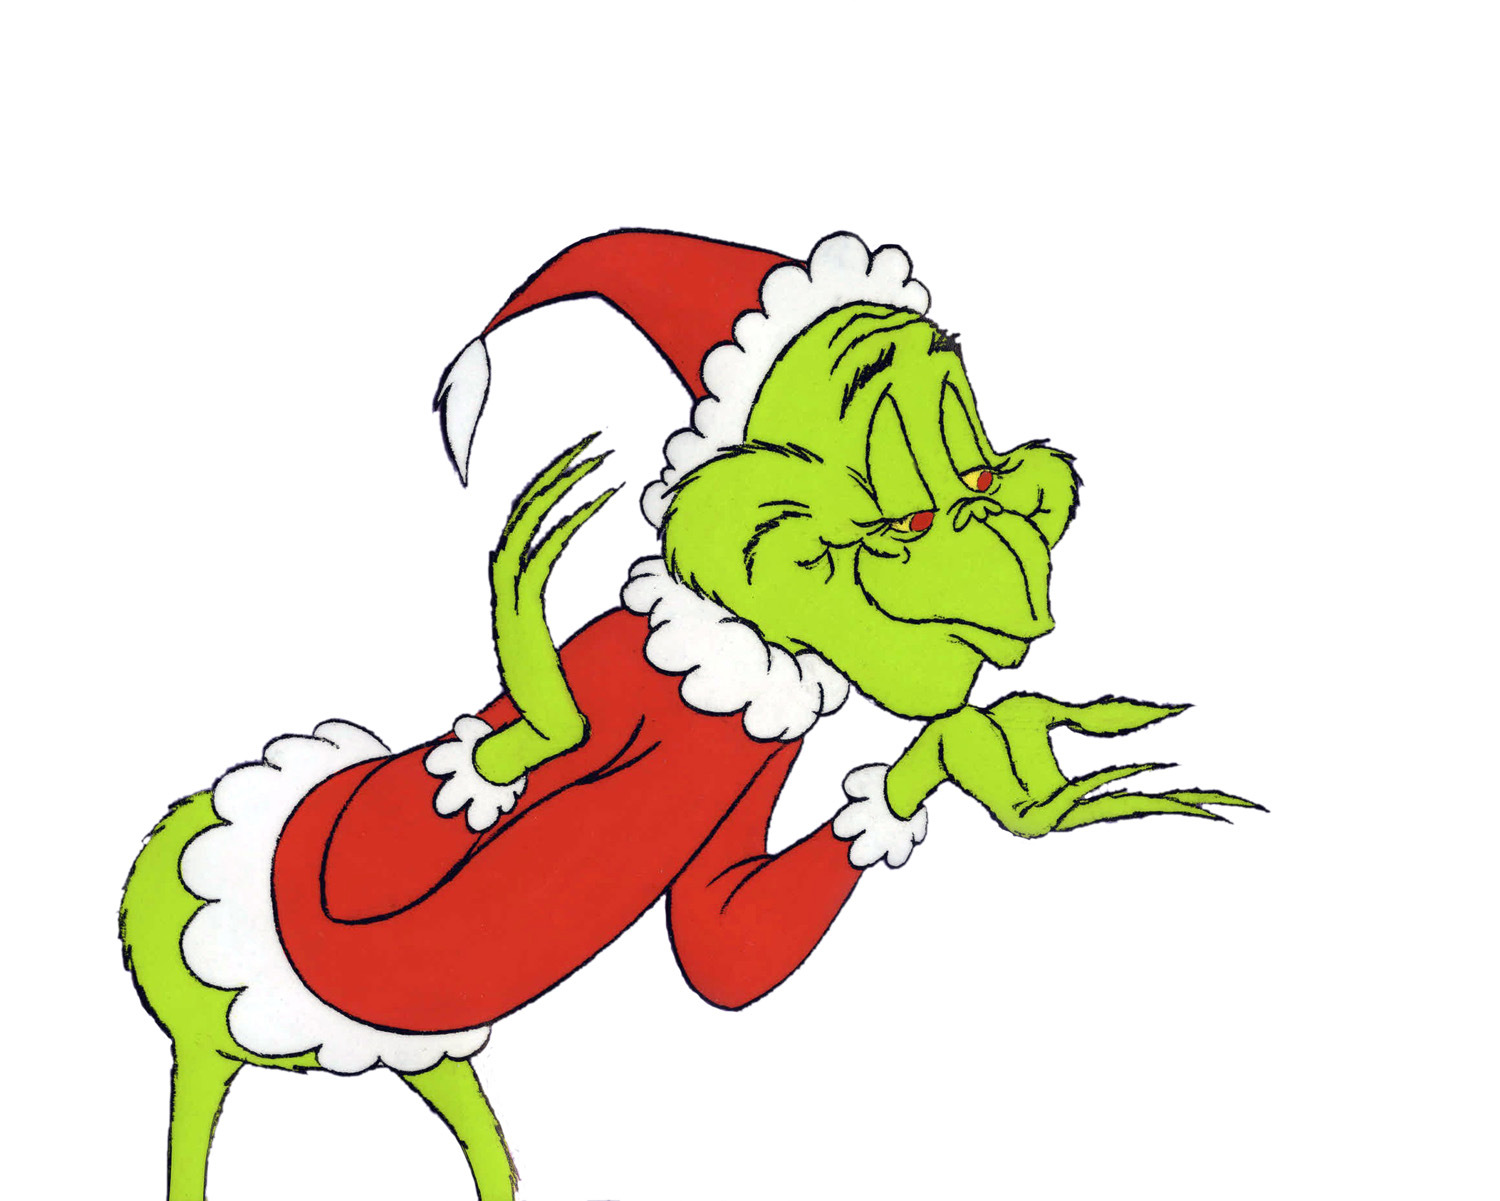 Pix For u0026gt; The Grinch Who Stole .-Pix For u0026gt; The Grinch Who Stole .-4